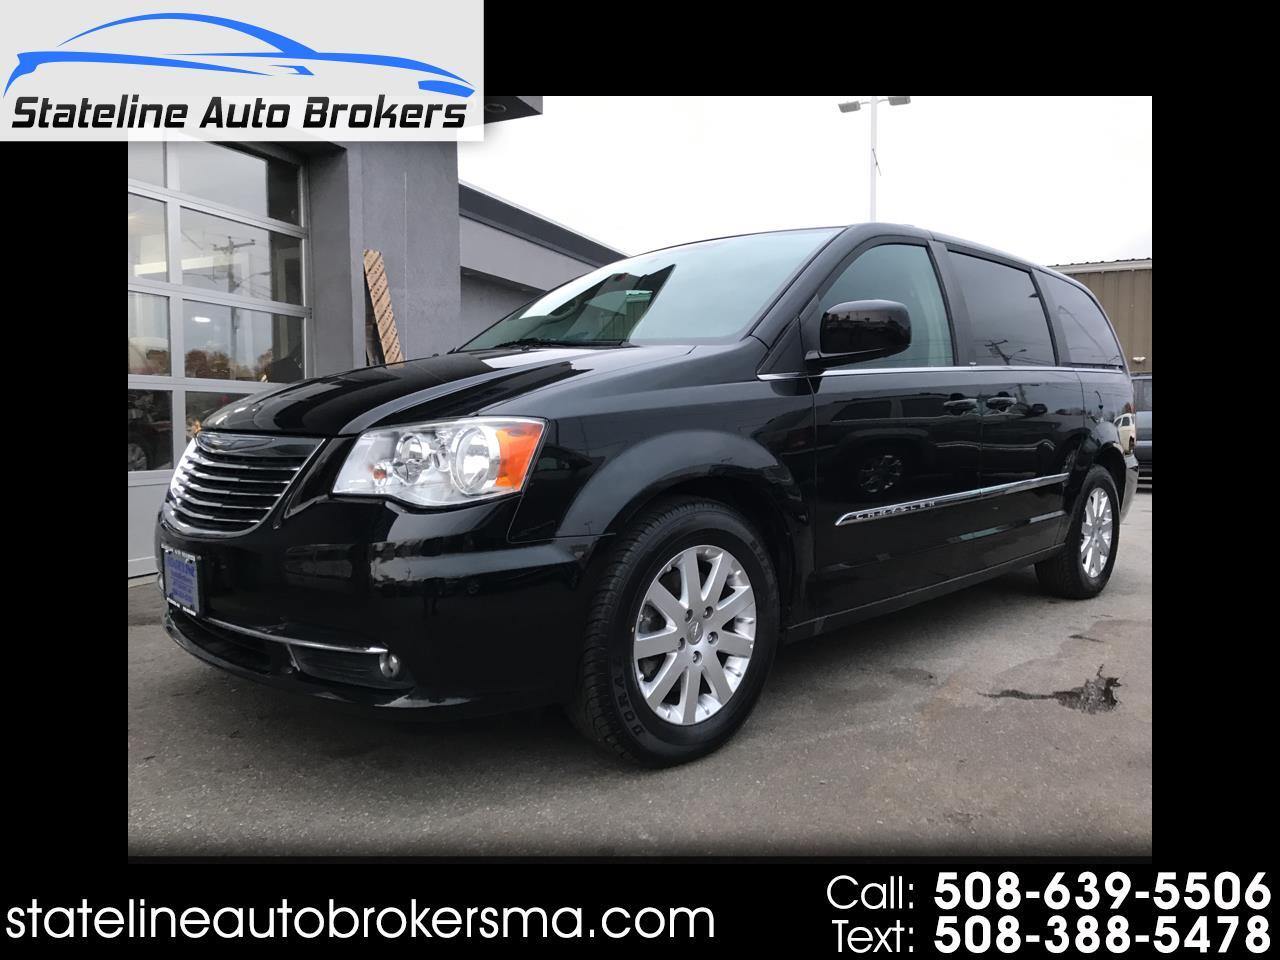 2014 Chrysler Town & Country 4dr Wgn Touring w/Leather